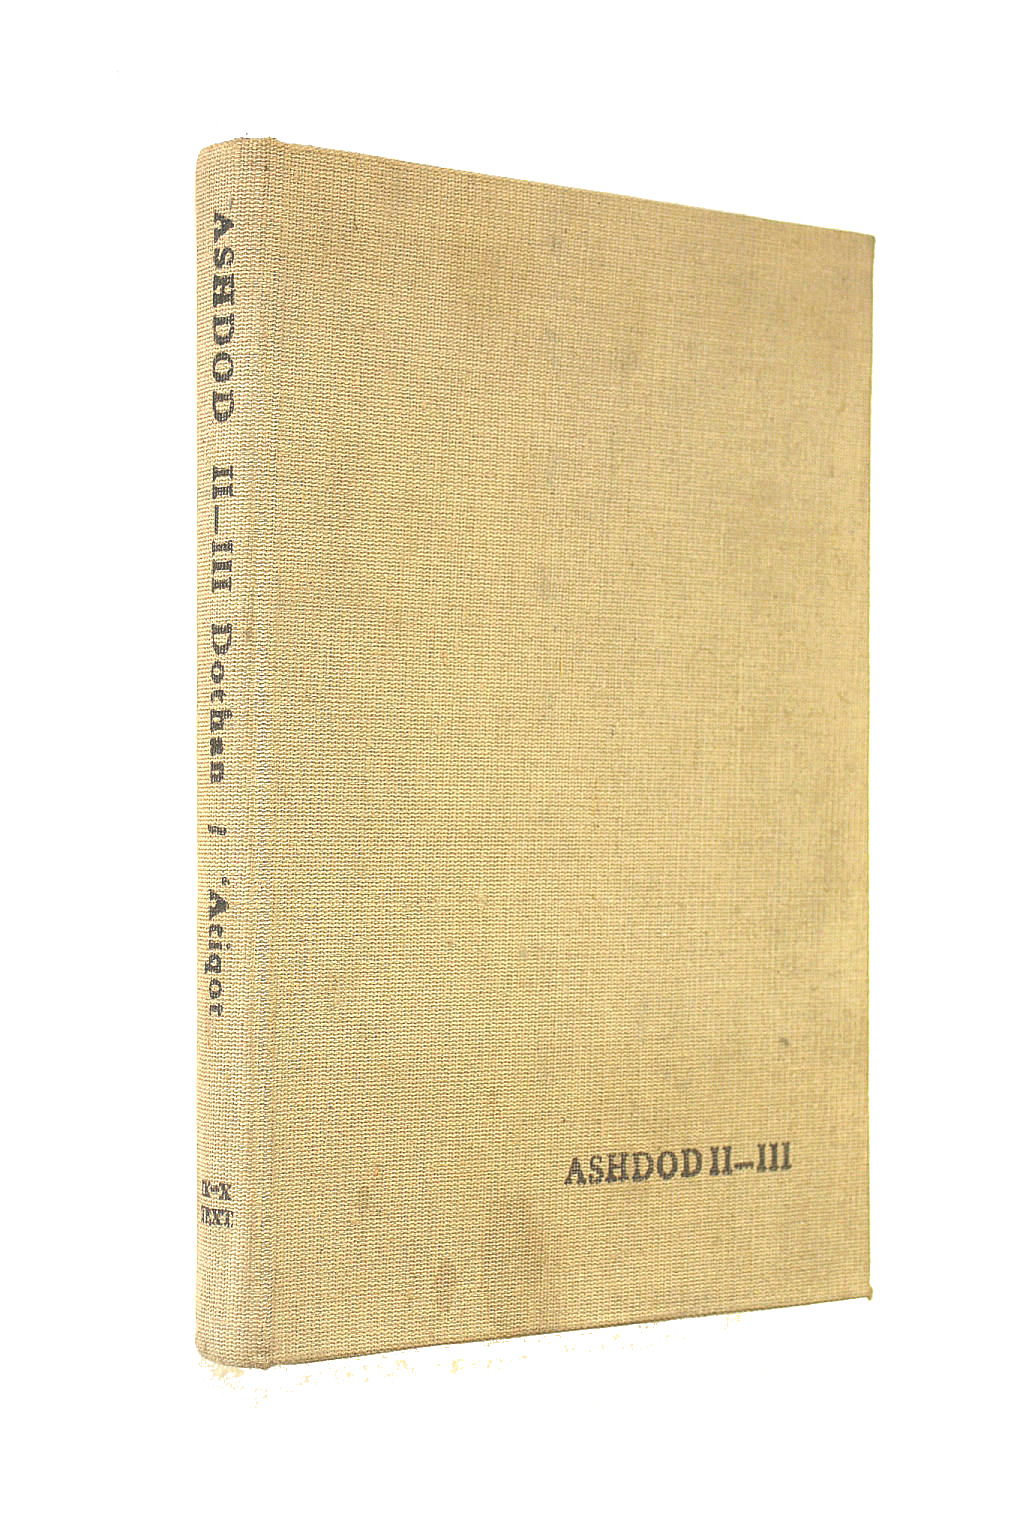 Image for Ashdod II-III: The Second And Third Seasons Of Excavations 1963, 1965; Soundings In 1967. Text